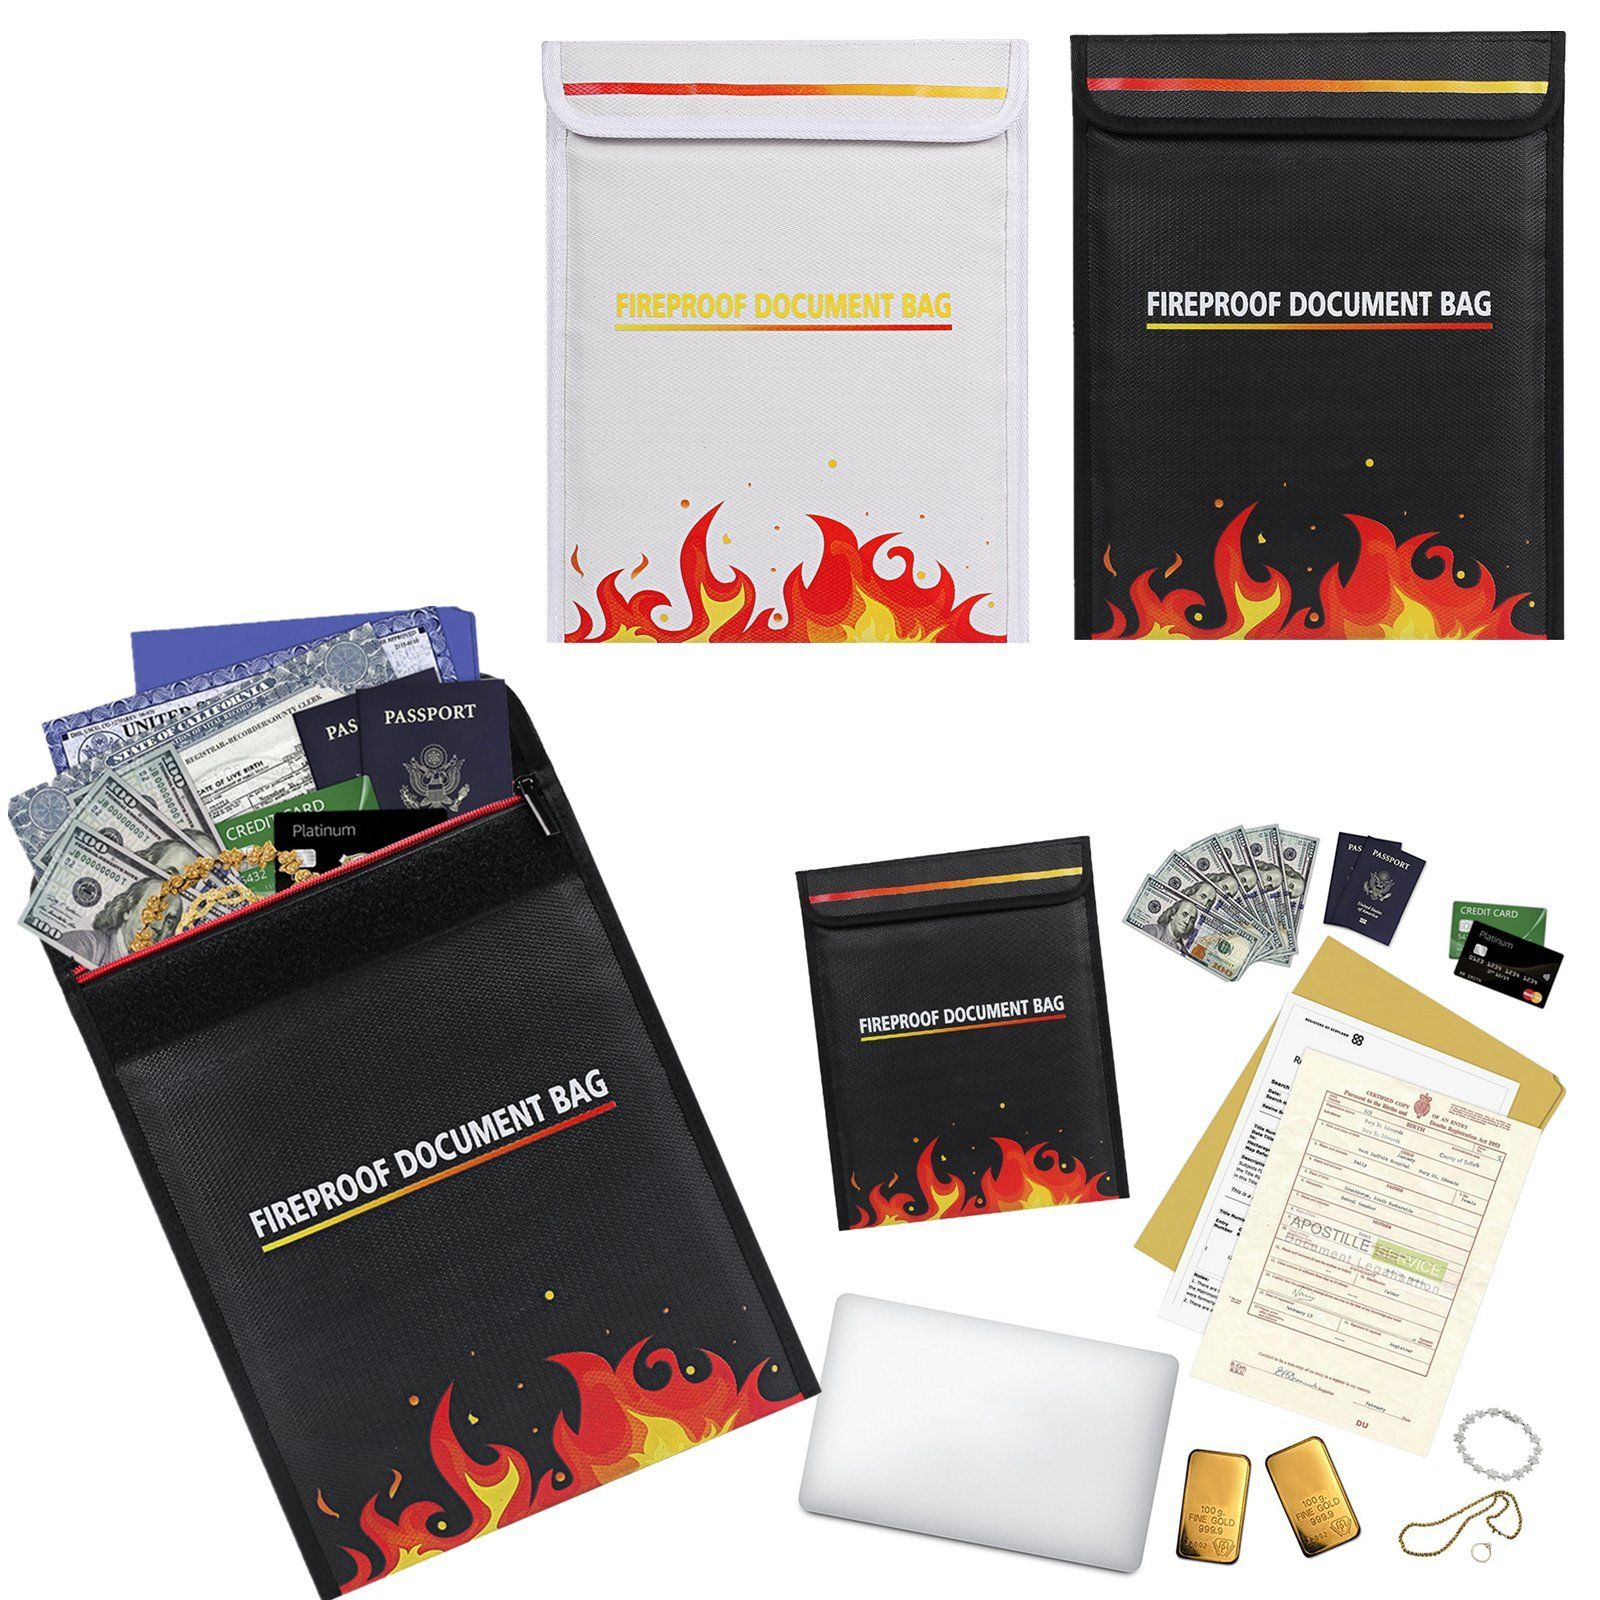 8763c54baaf2 $9.48 - Waterproof Document Fire Resistant Pouch Storage Safe Bag ...